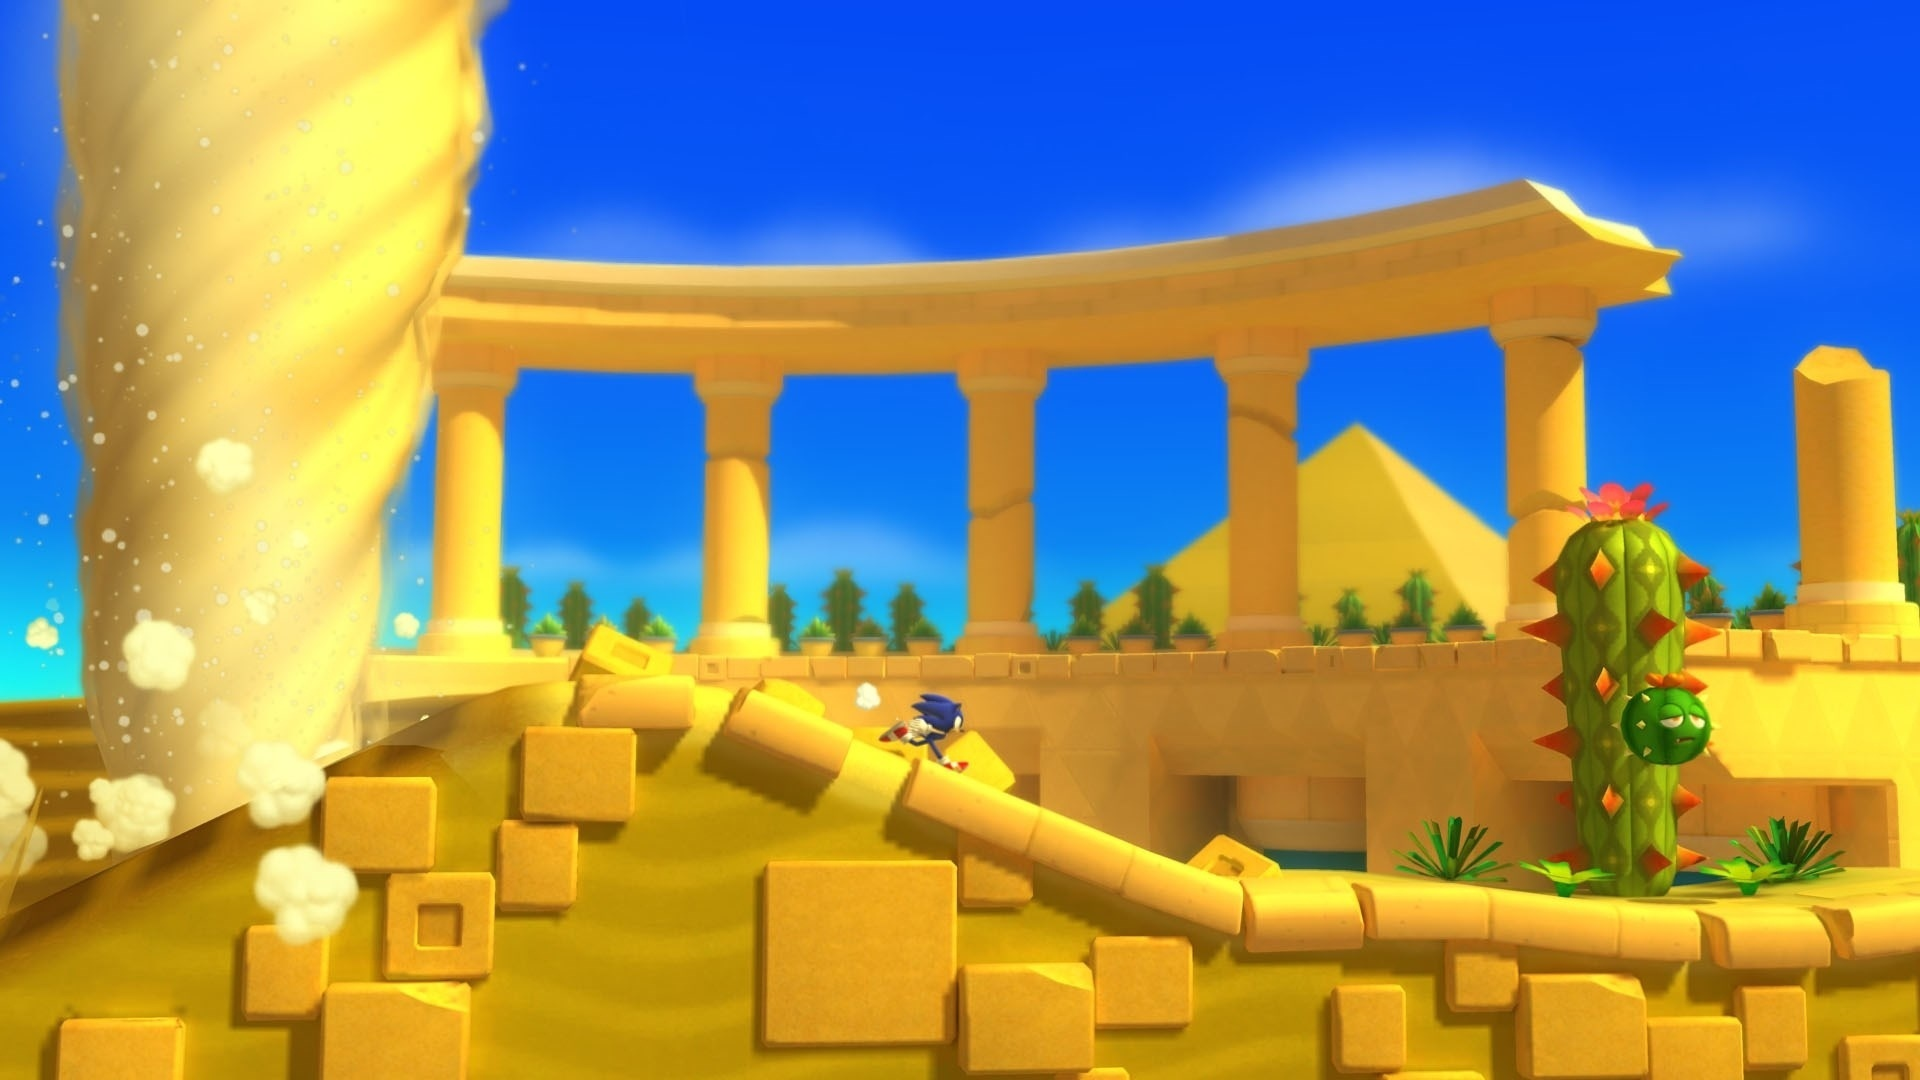 [Discussão] Sonic Lost World [Wii U/3ds] Sonic-lost-world-1377629387091_1920x1080